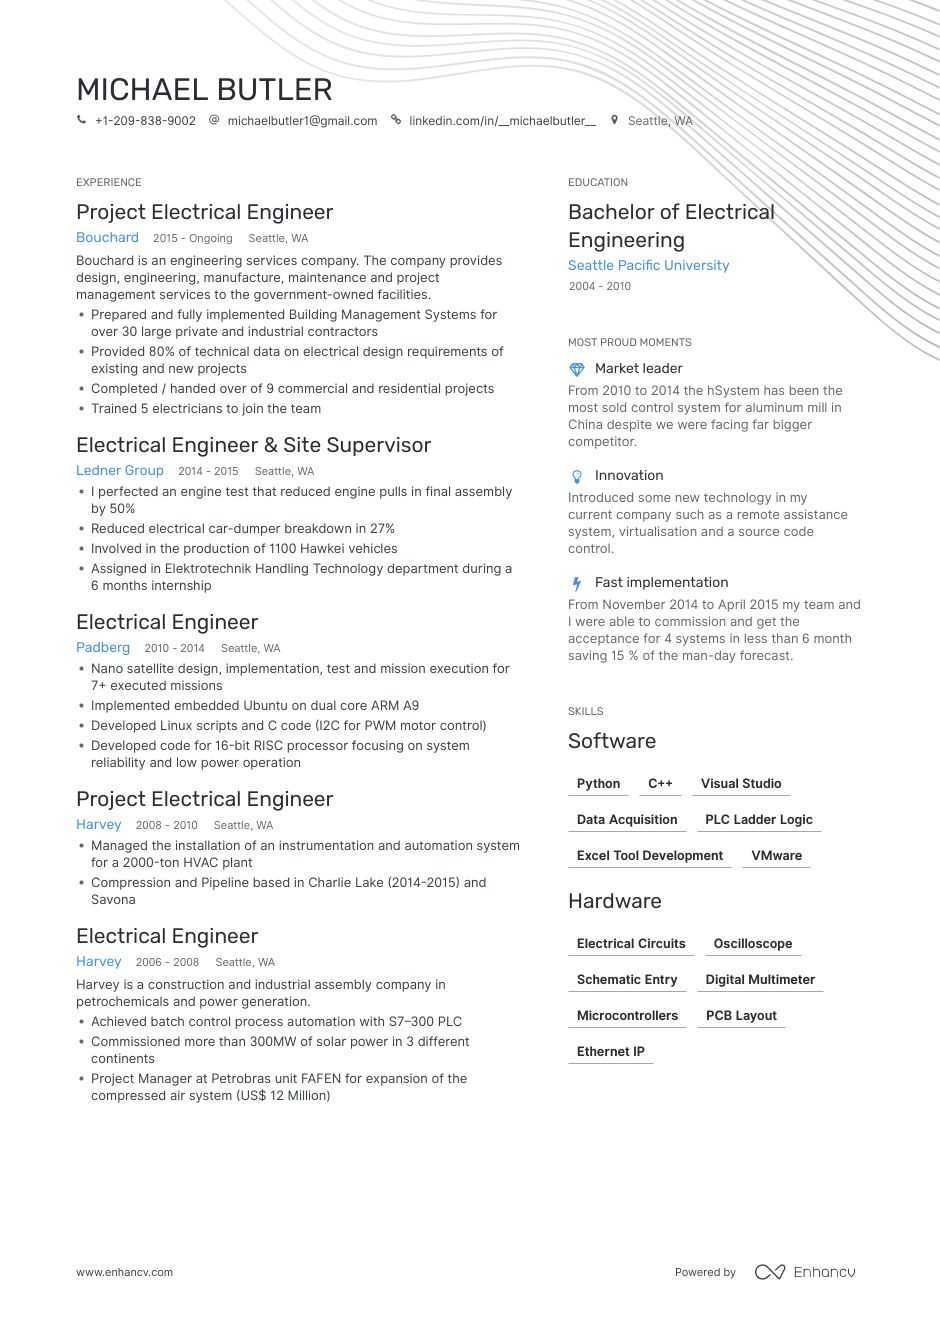 electrical engineer resume examples pro tips featured enhancv construction project Resume Construction Project Engineer Resume Objective